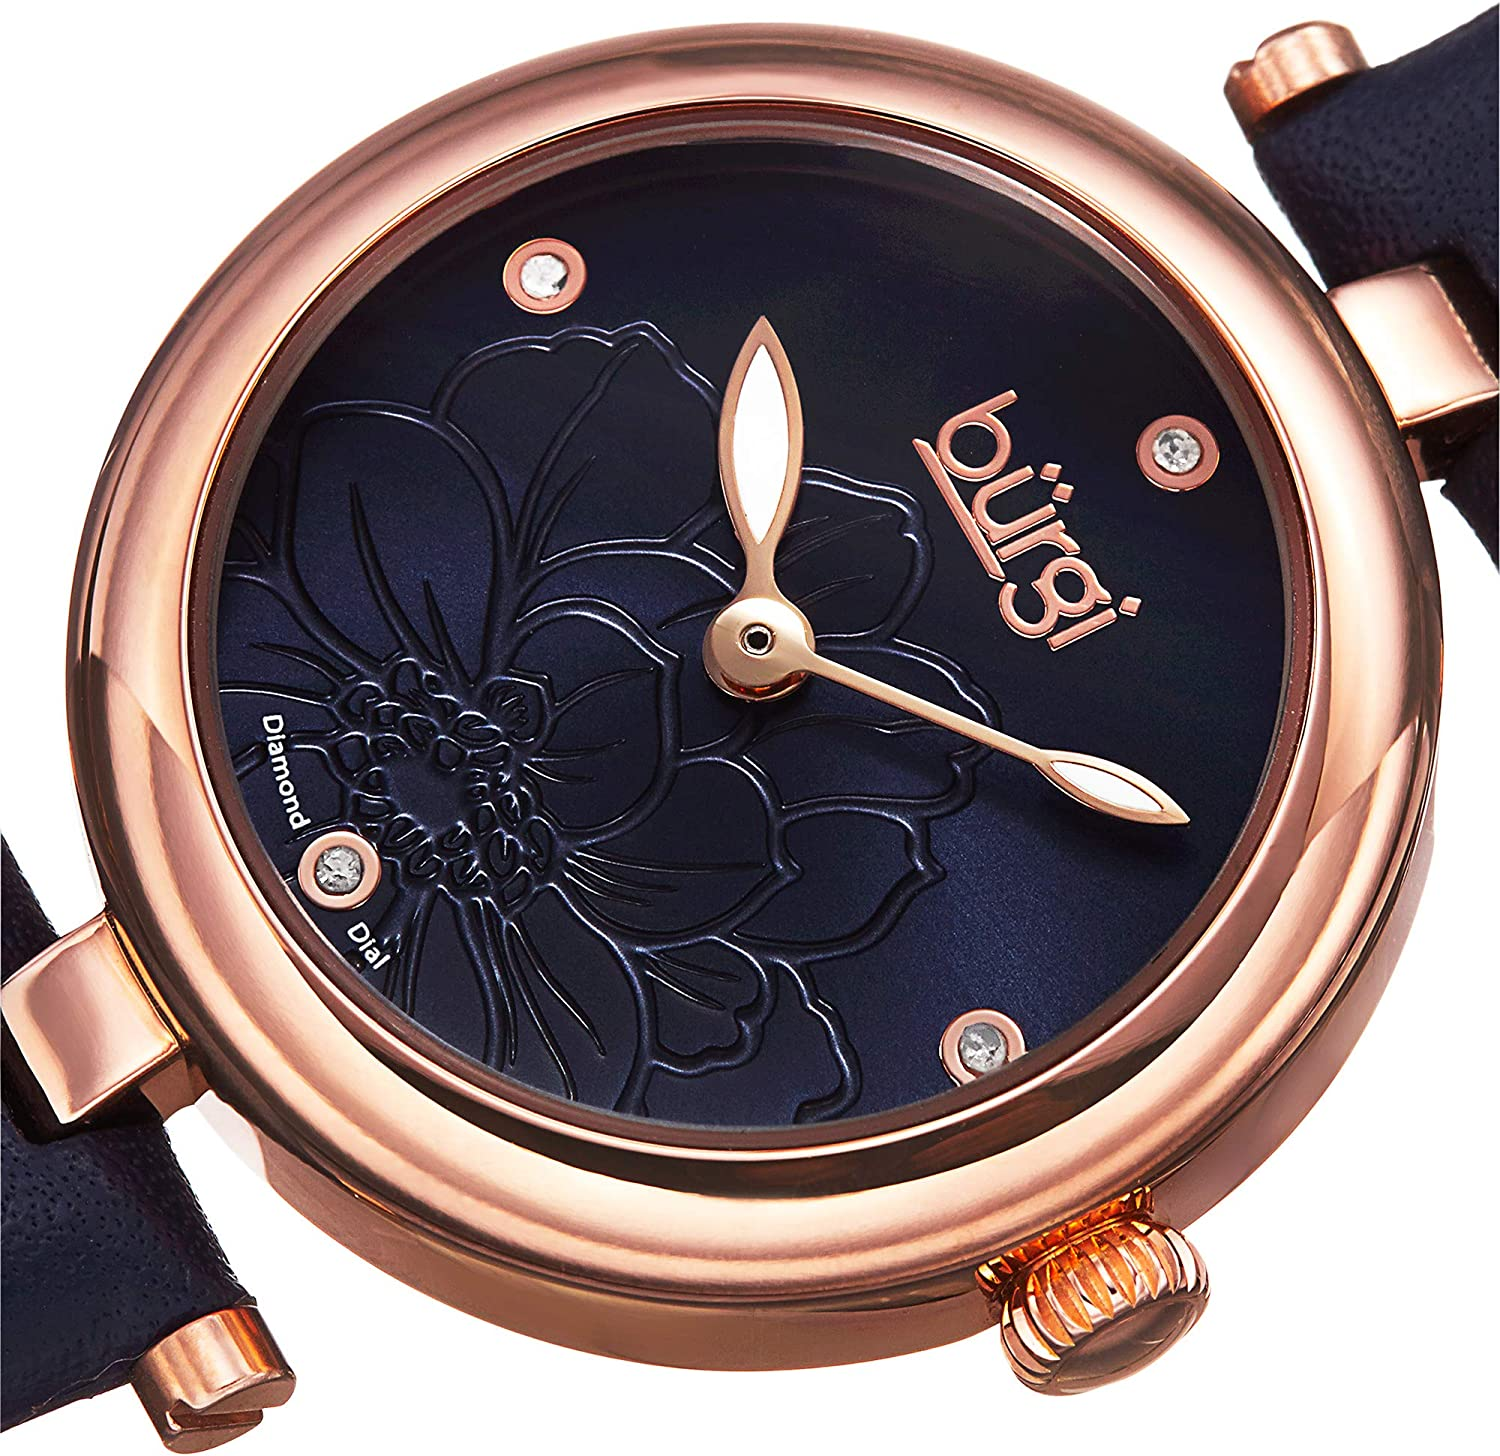 Burgi Diamond Accented Flower Dial Watch - 4 Diamond Hour Markers On Genuine Leather Strap - BUR128 Gold & Blue